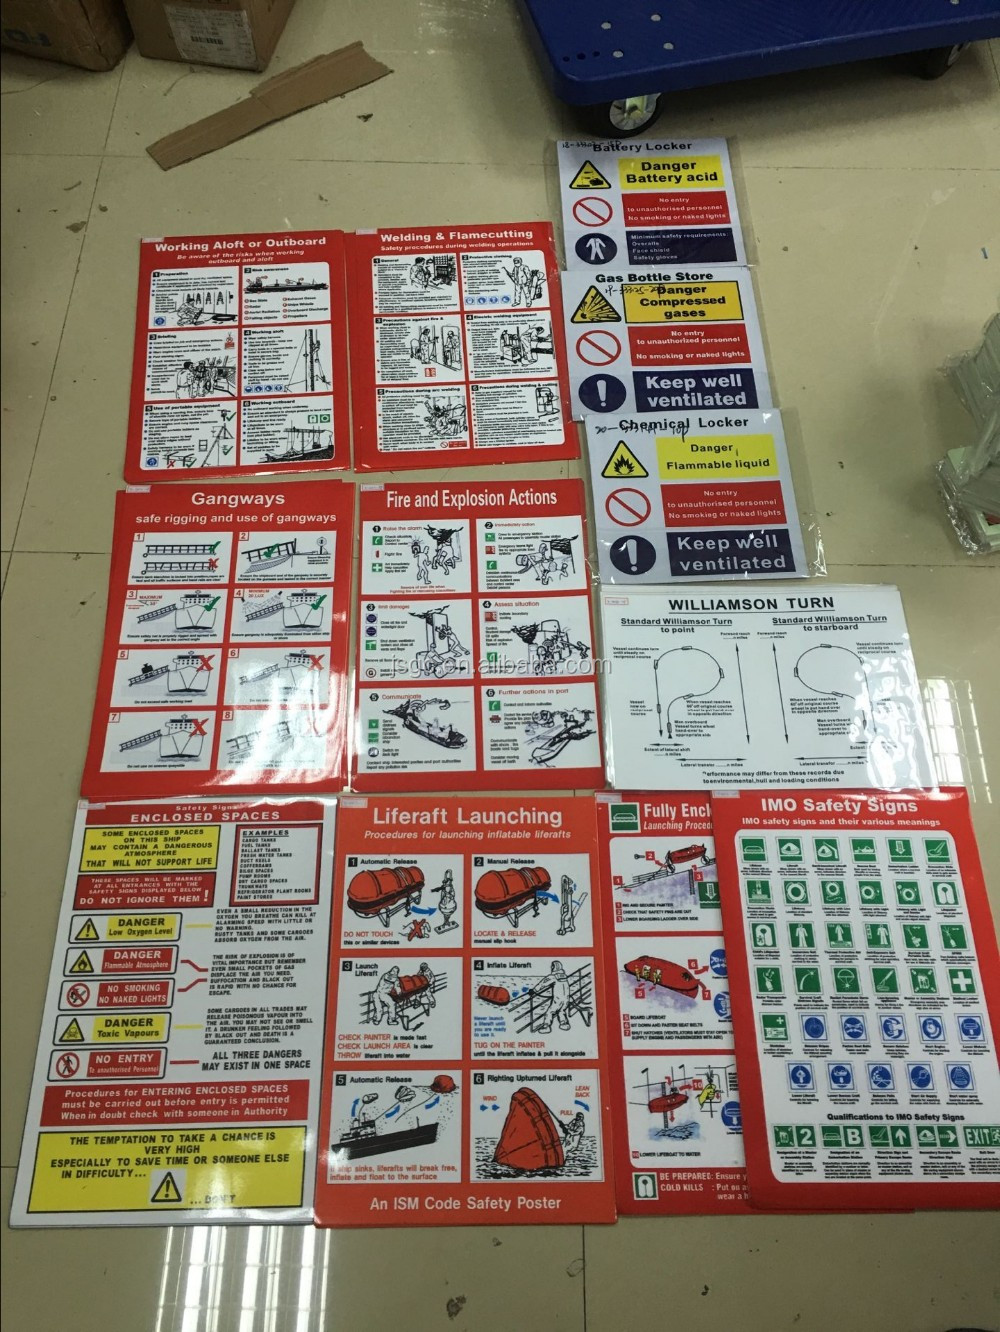 Imo symbols marine safety signs buy fire safety symbolsimo imo symbols marine safety signs buycottarizona